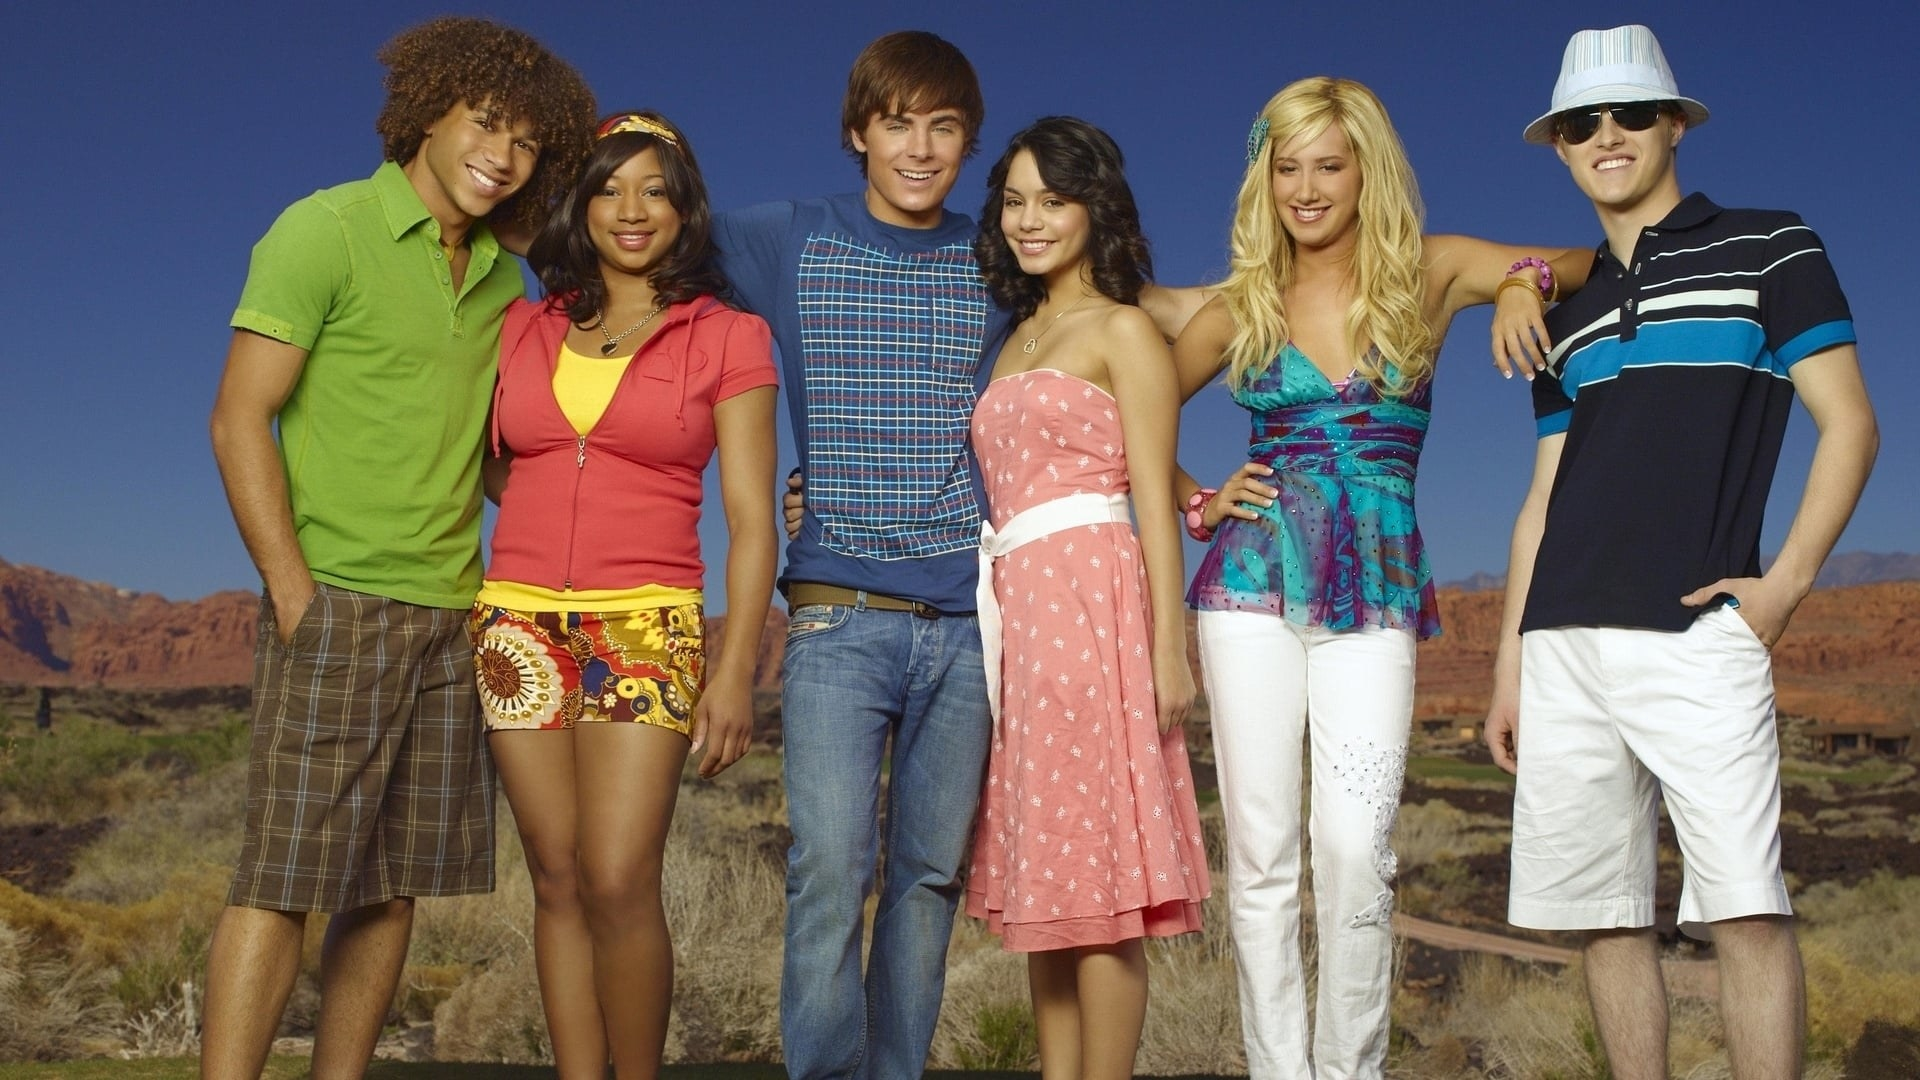 The cast of High School Musical 2 about to jump into a pool together